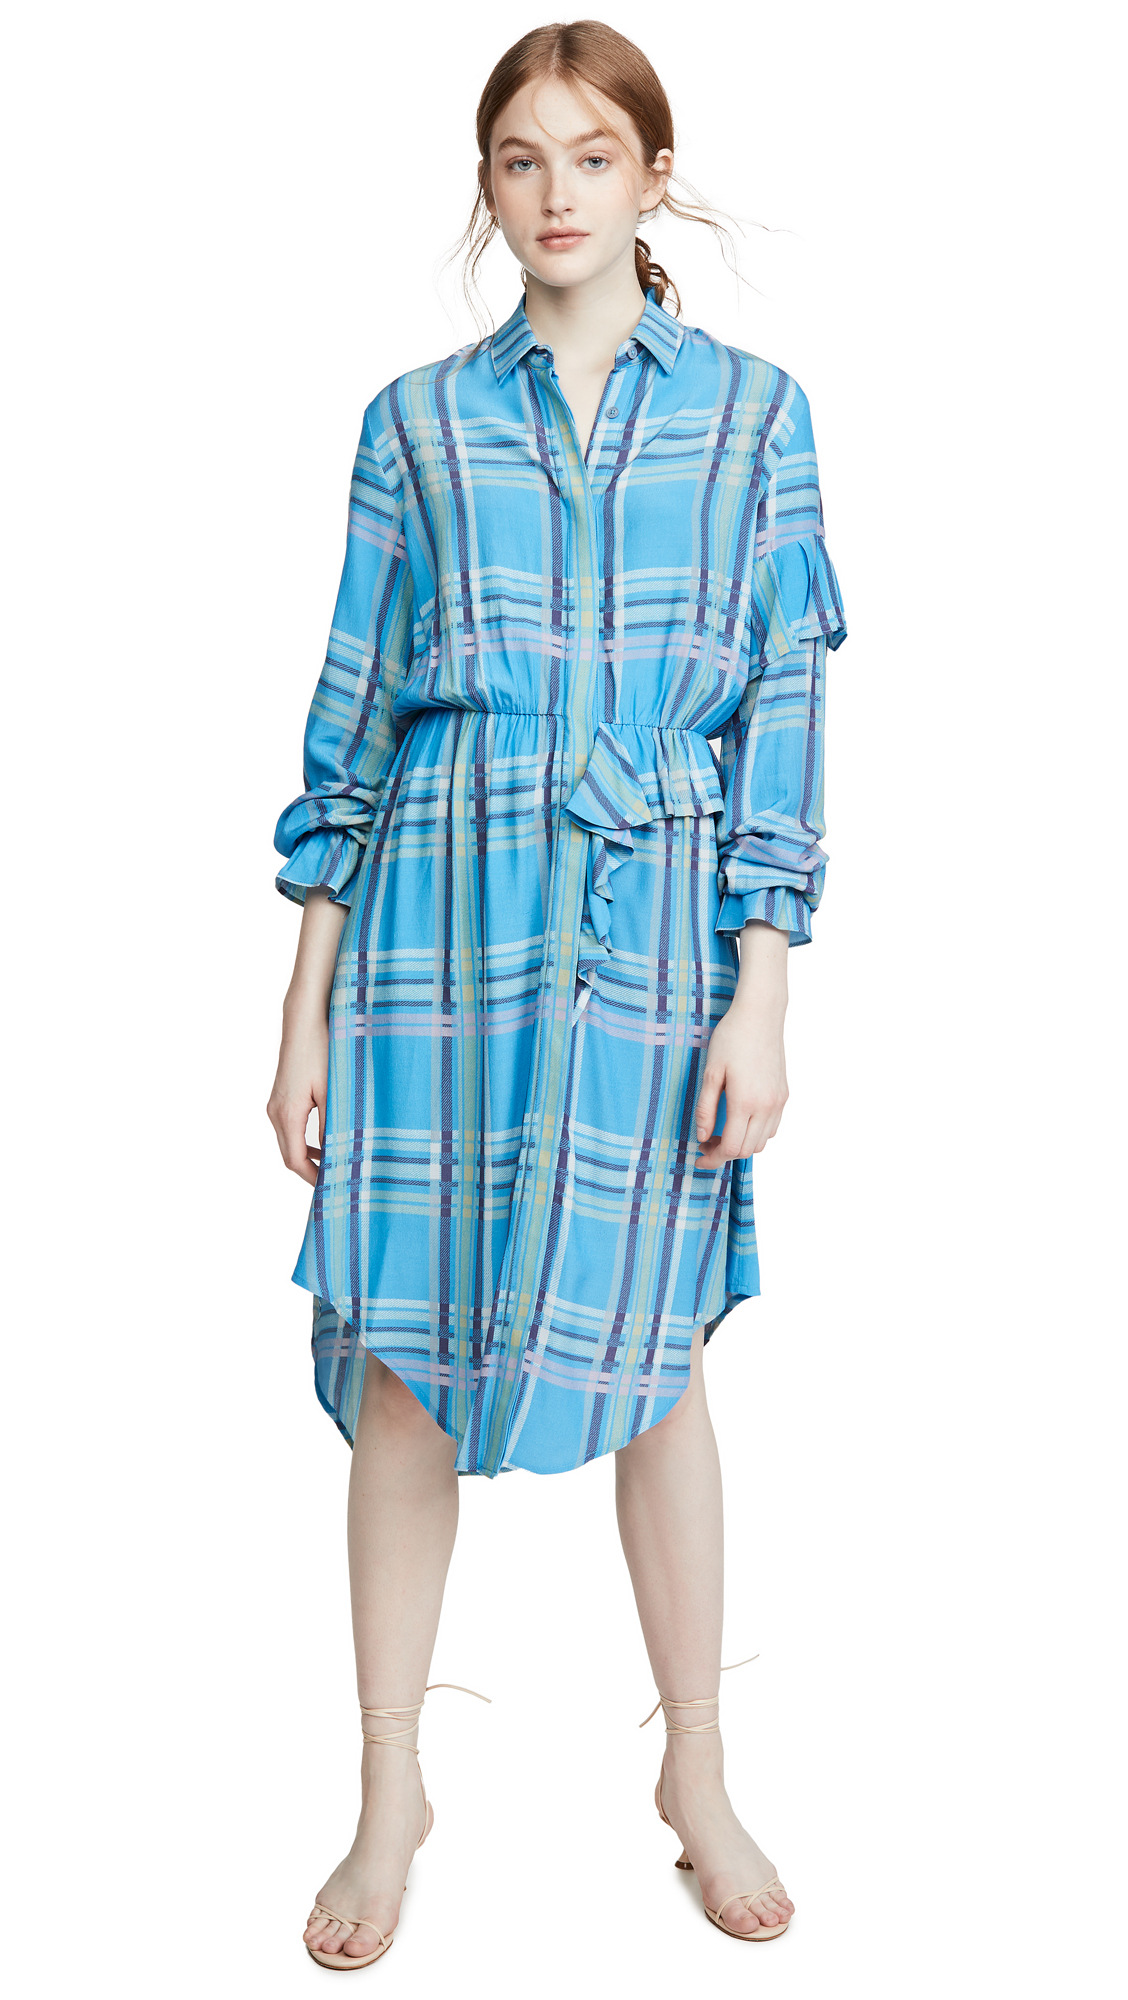 Preen By Thornton Bregazzi Preen Line Primrose Shirtdress - 60% Off Sale